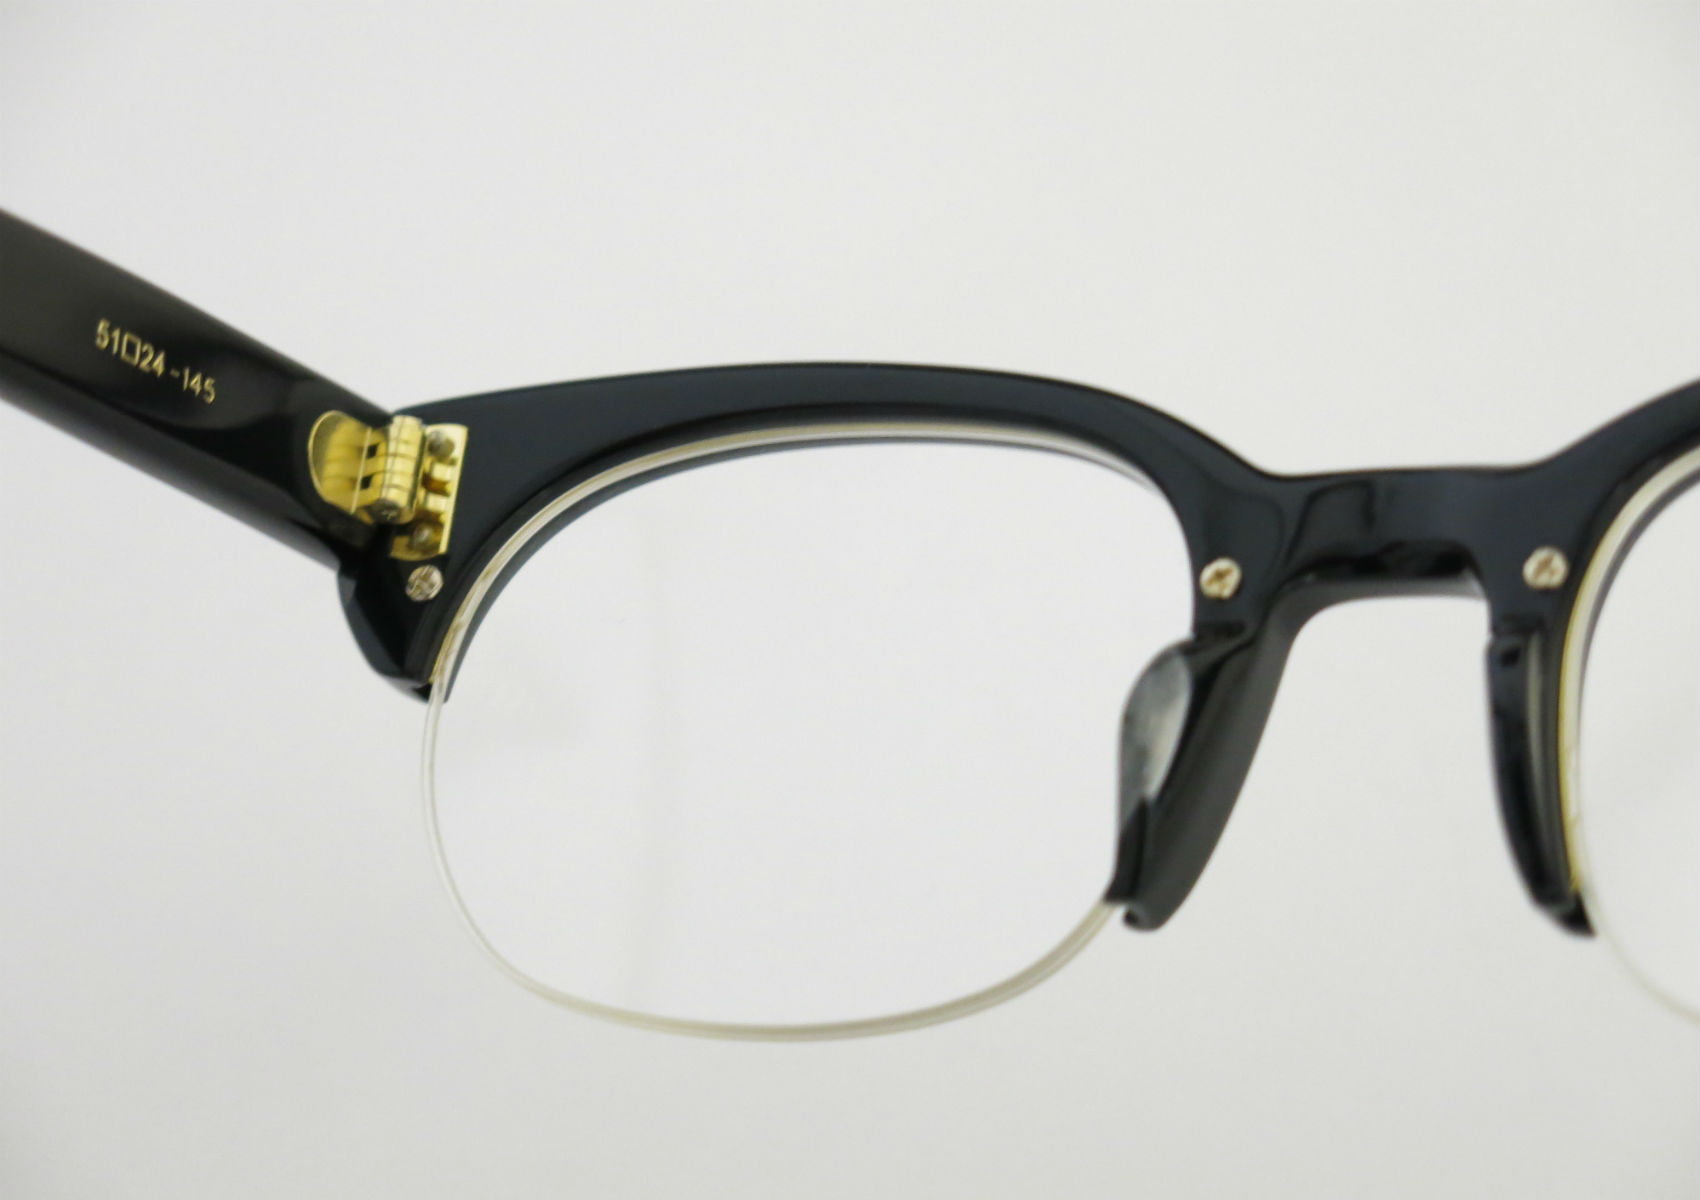 OLIVER GOLDSMITH NSL3 NERO